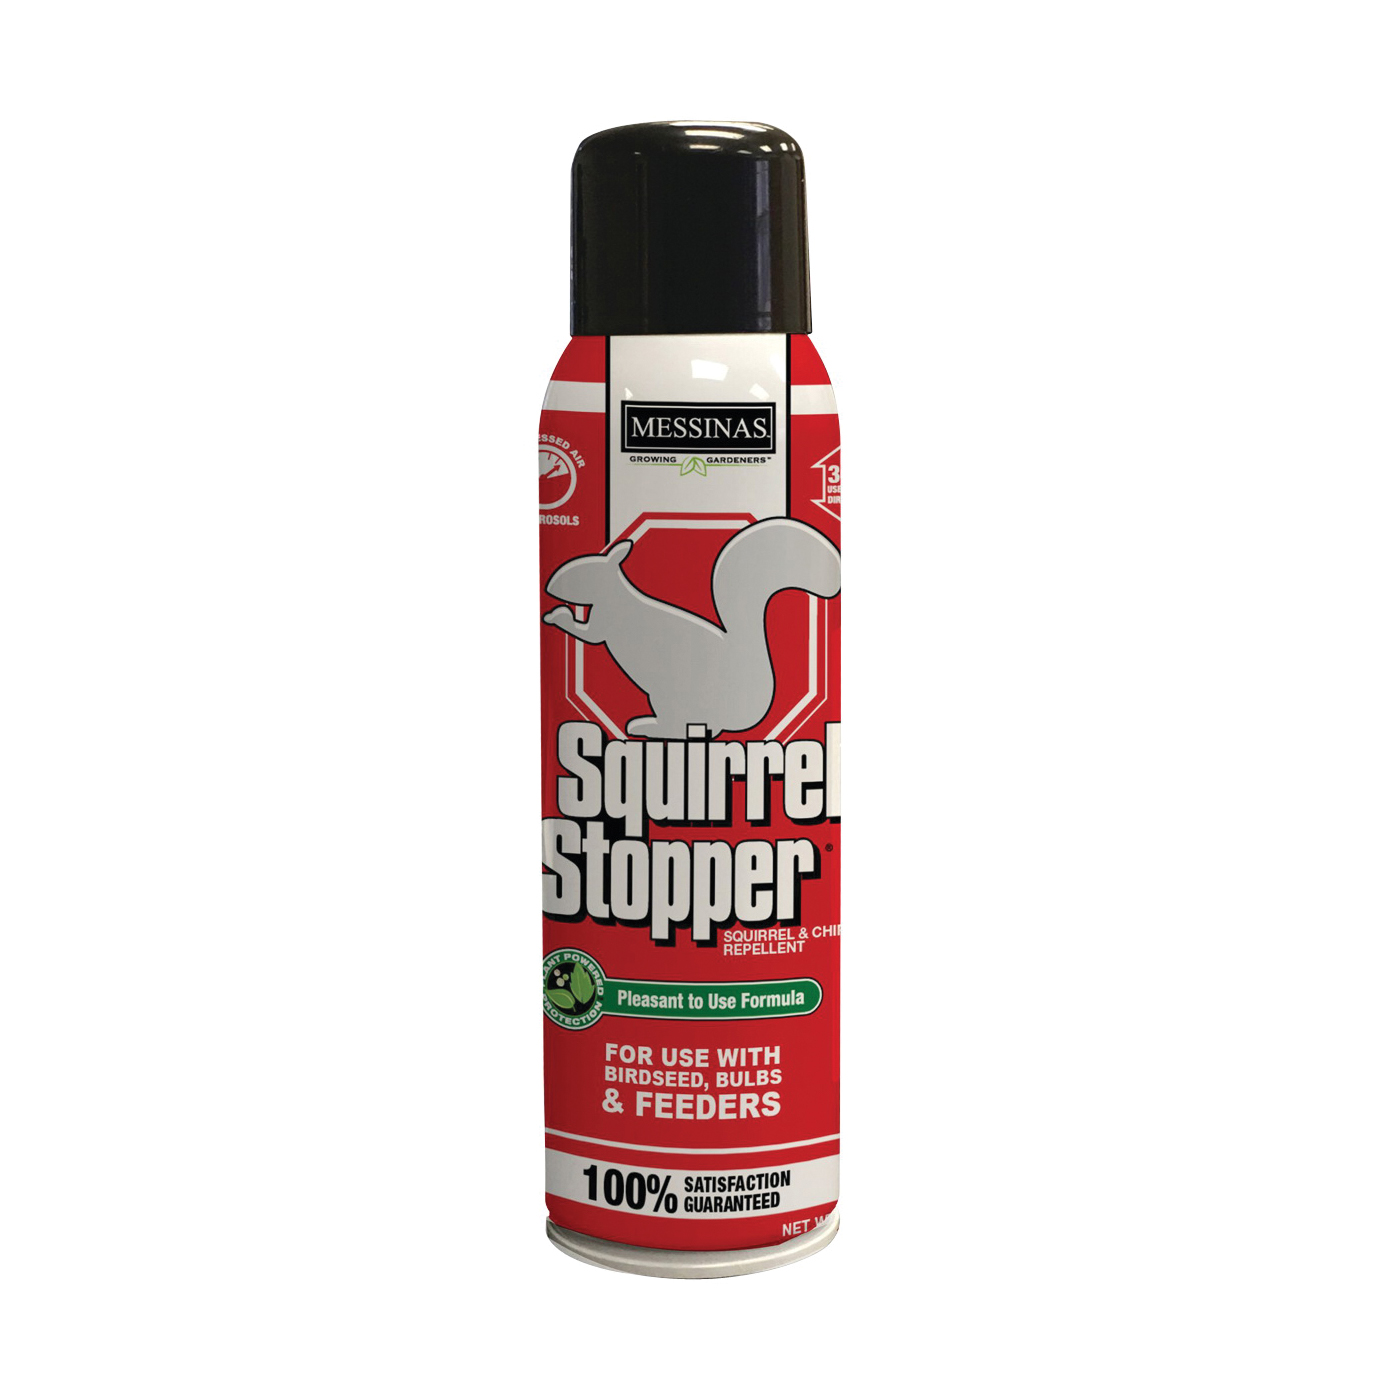 Picture of Squirrel Stopper SQ-U-SC1 Squirrel Stopper